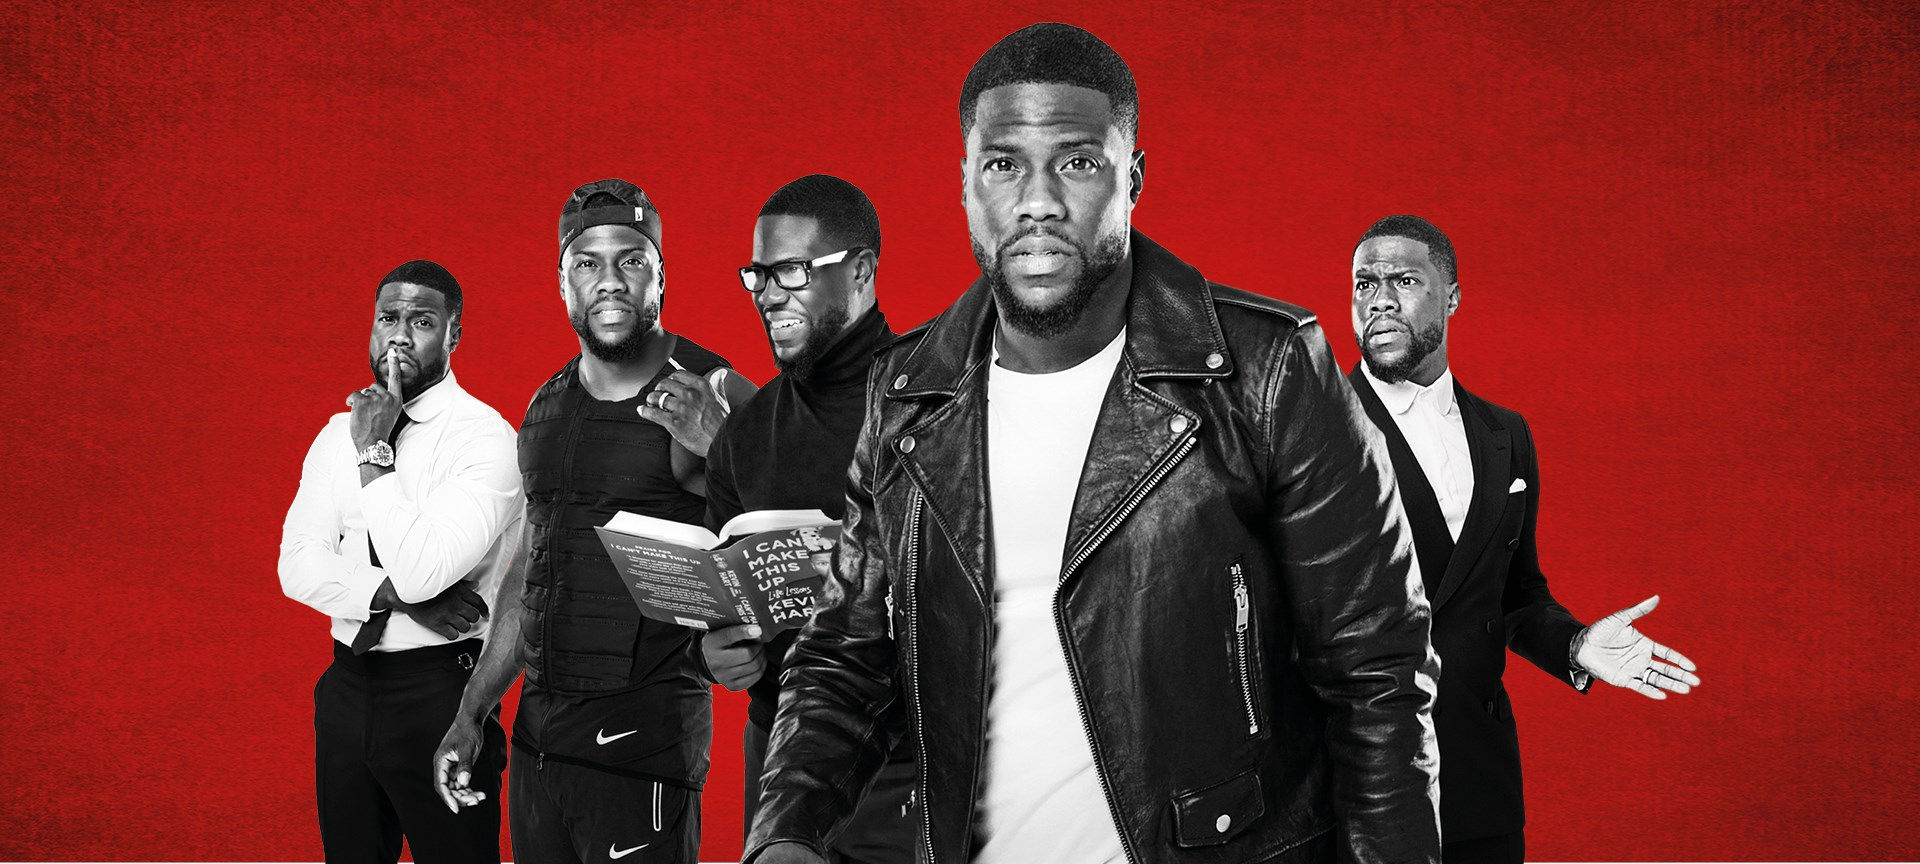 Kevin Hart - The Irresponsible Tour